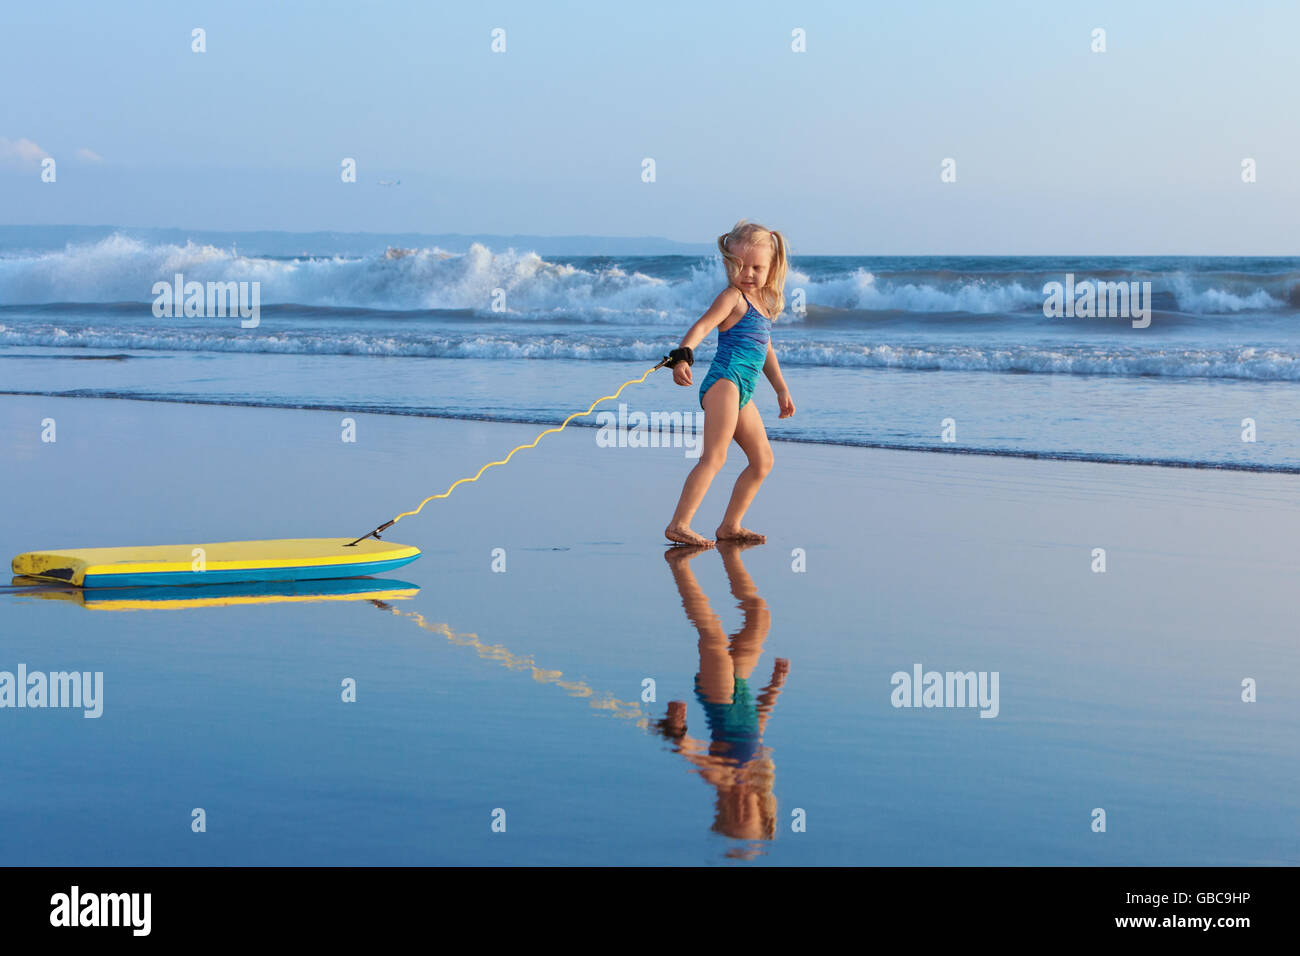 Little baby girl - young surfer with bodyboard has fun on sea beach. Family lifestyle, people water sport activity, surfing Stock Photo